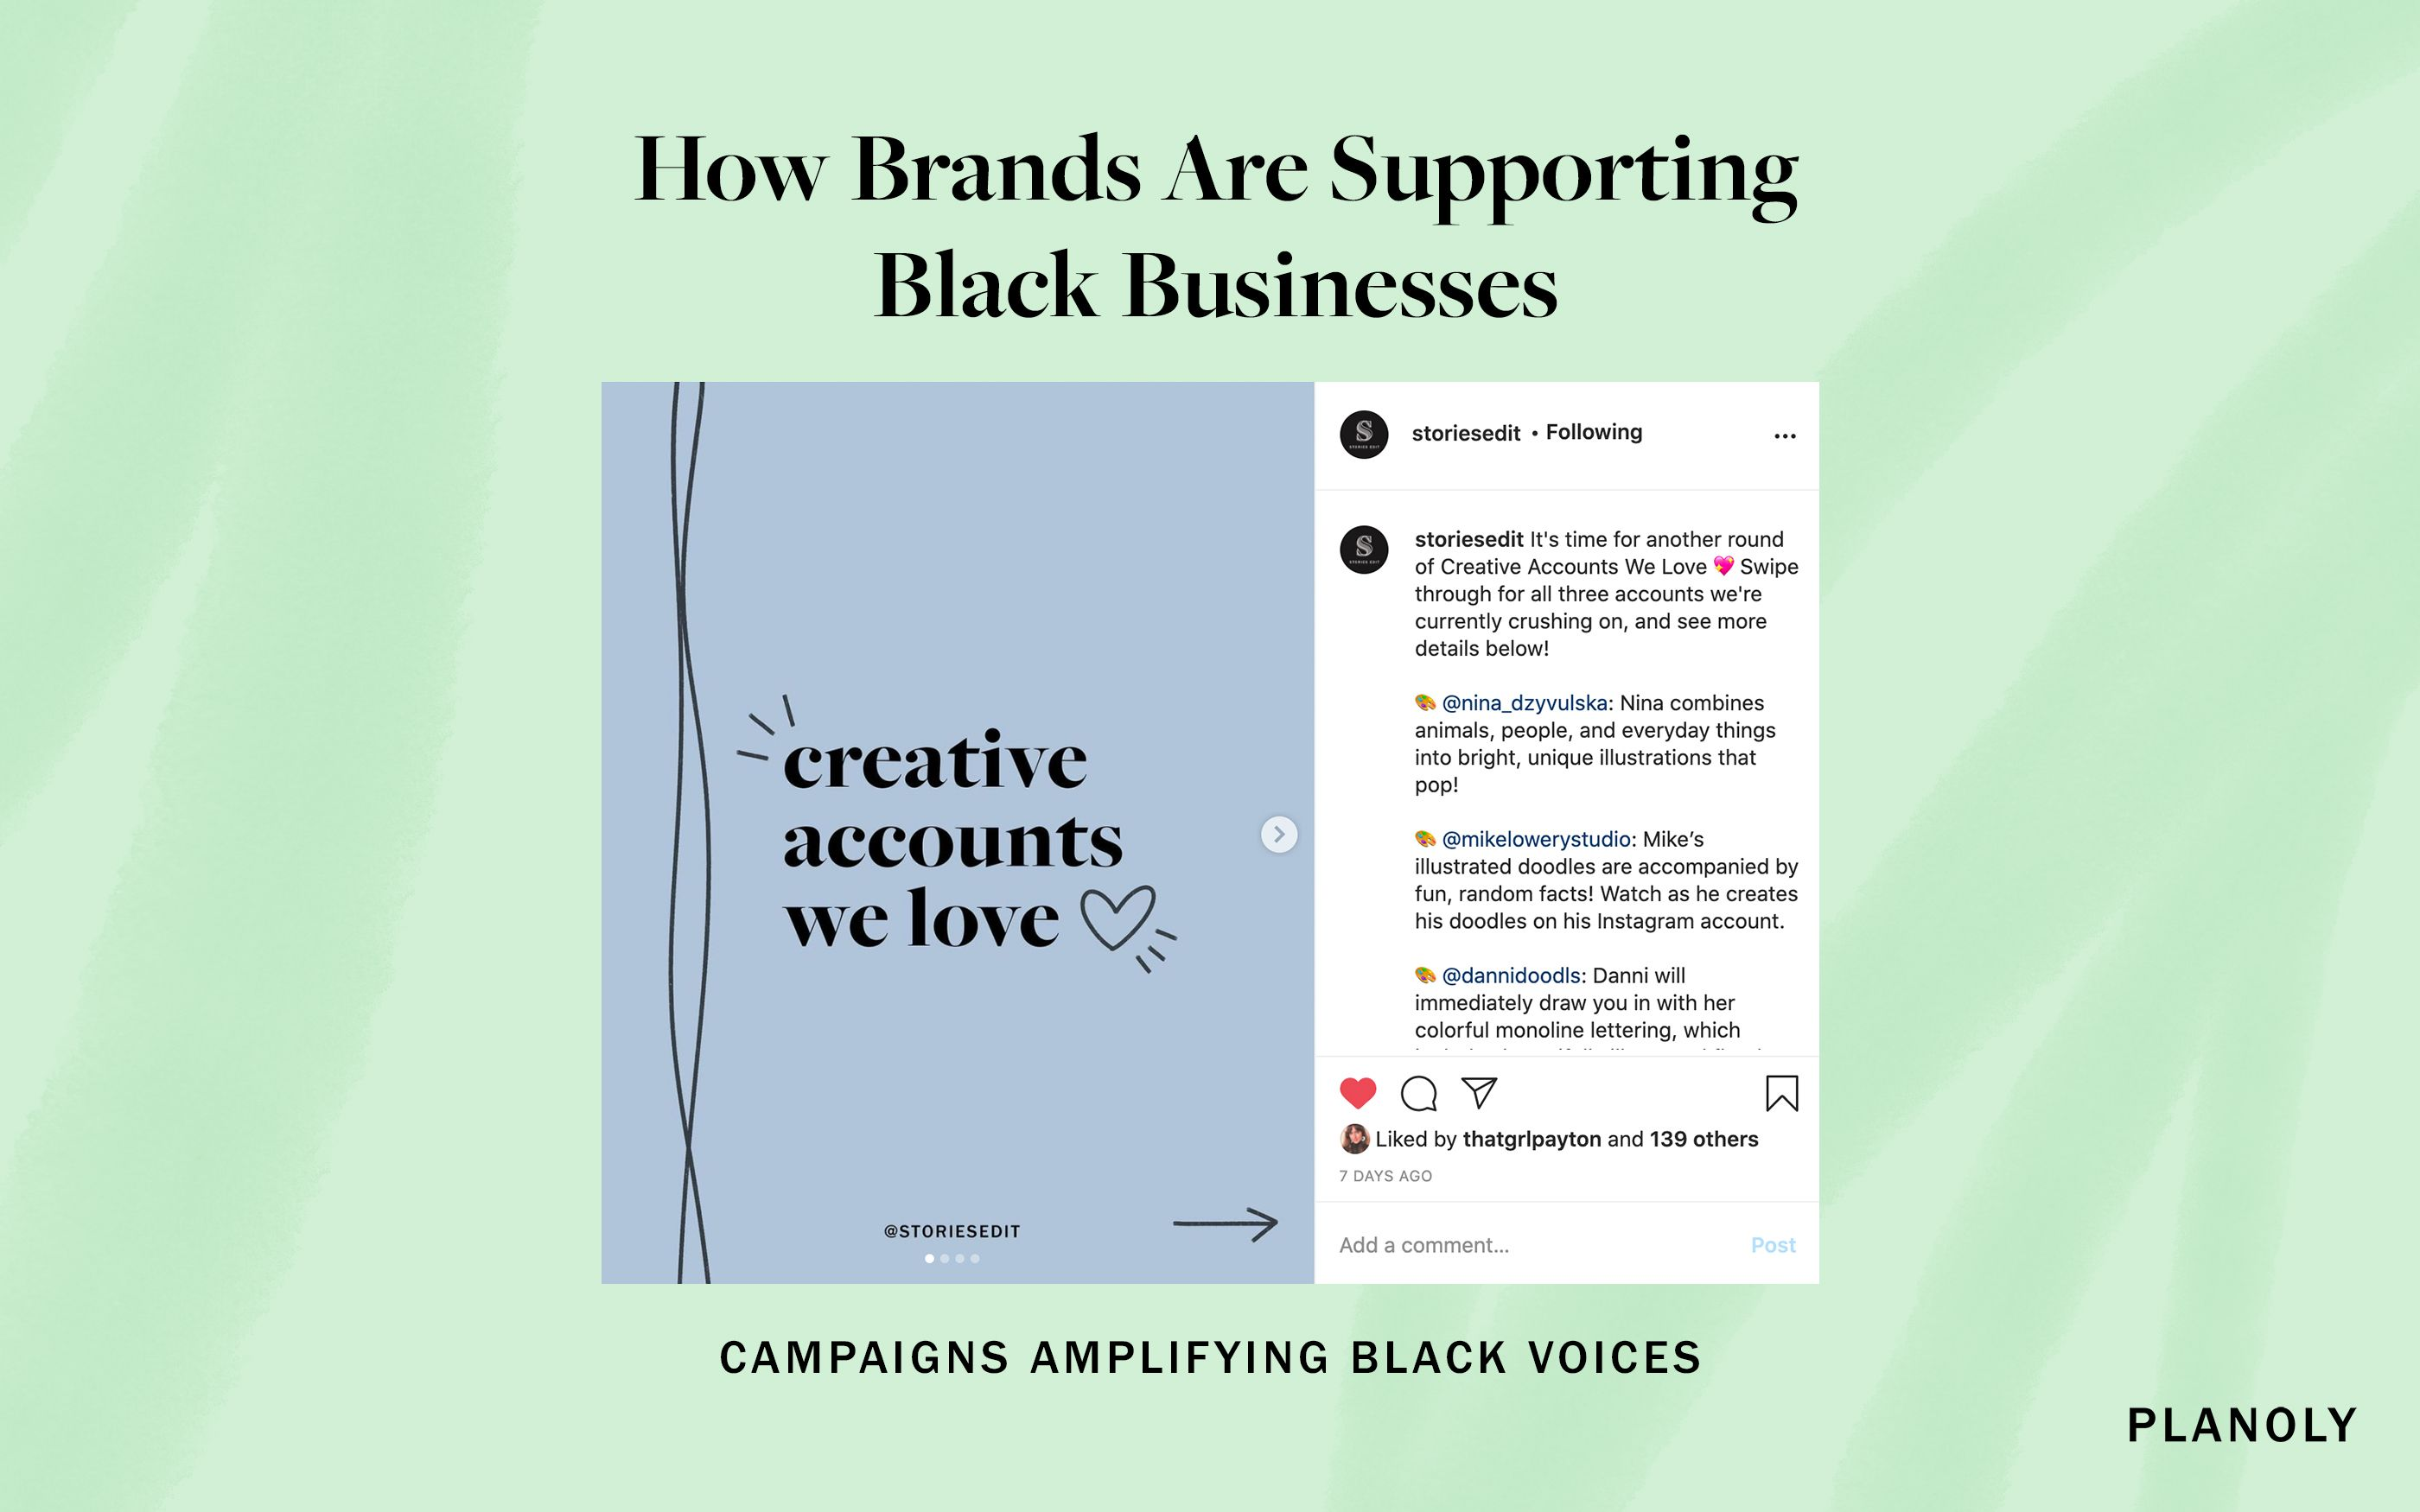 PLANOLY - Blog Post - How to Support Black Businesses - Image 3